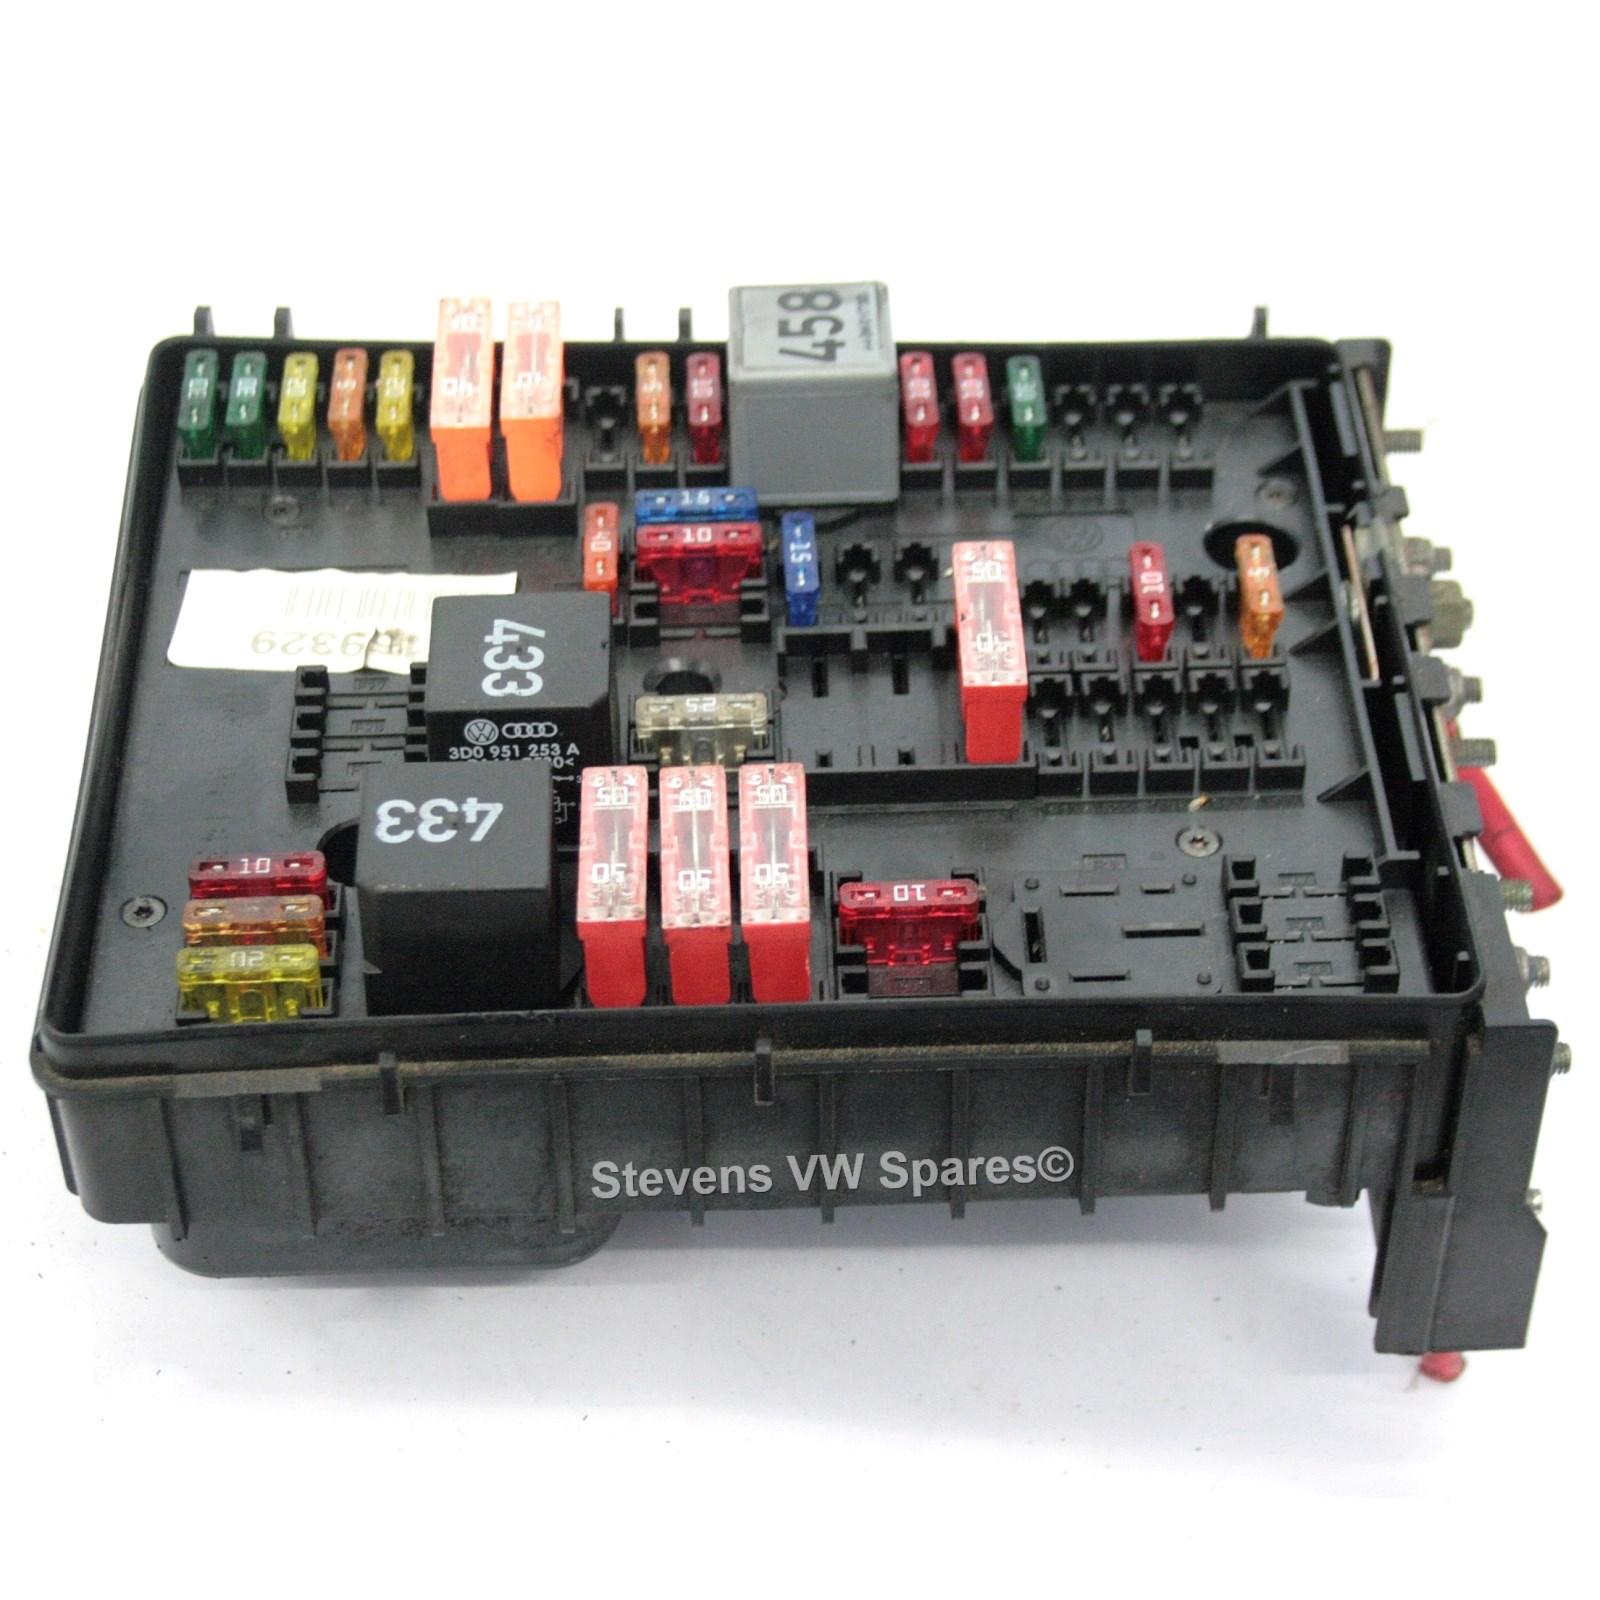 used genuine vw golf engine bay fuse box terminal 1k0 937 124 h rh  stevensvwspares com 2013 VW Jetta TDI Fuse Diagram 2012 VW Jetta Fuse Panel  Diagram